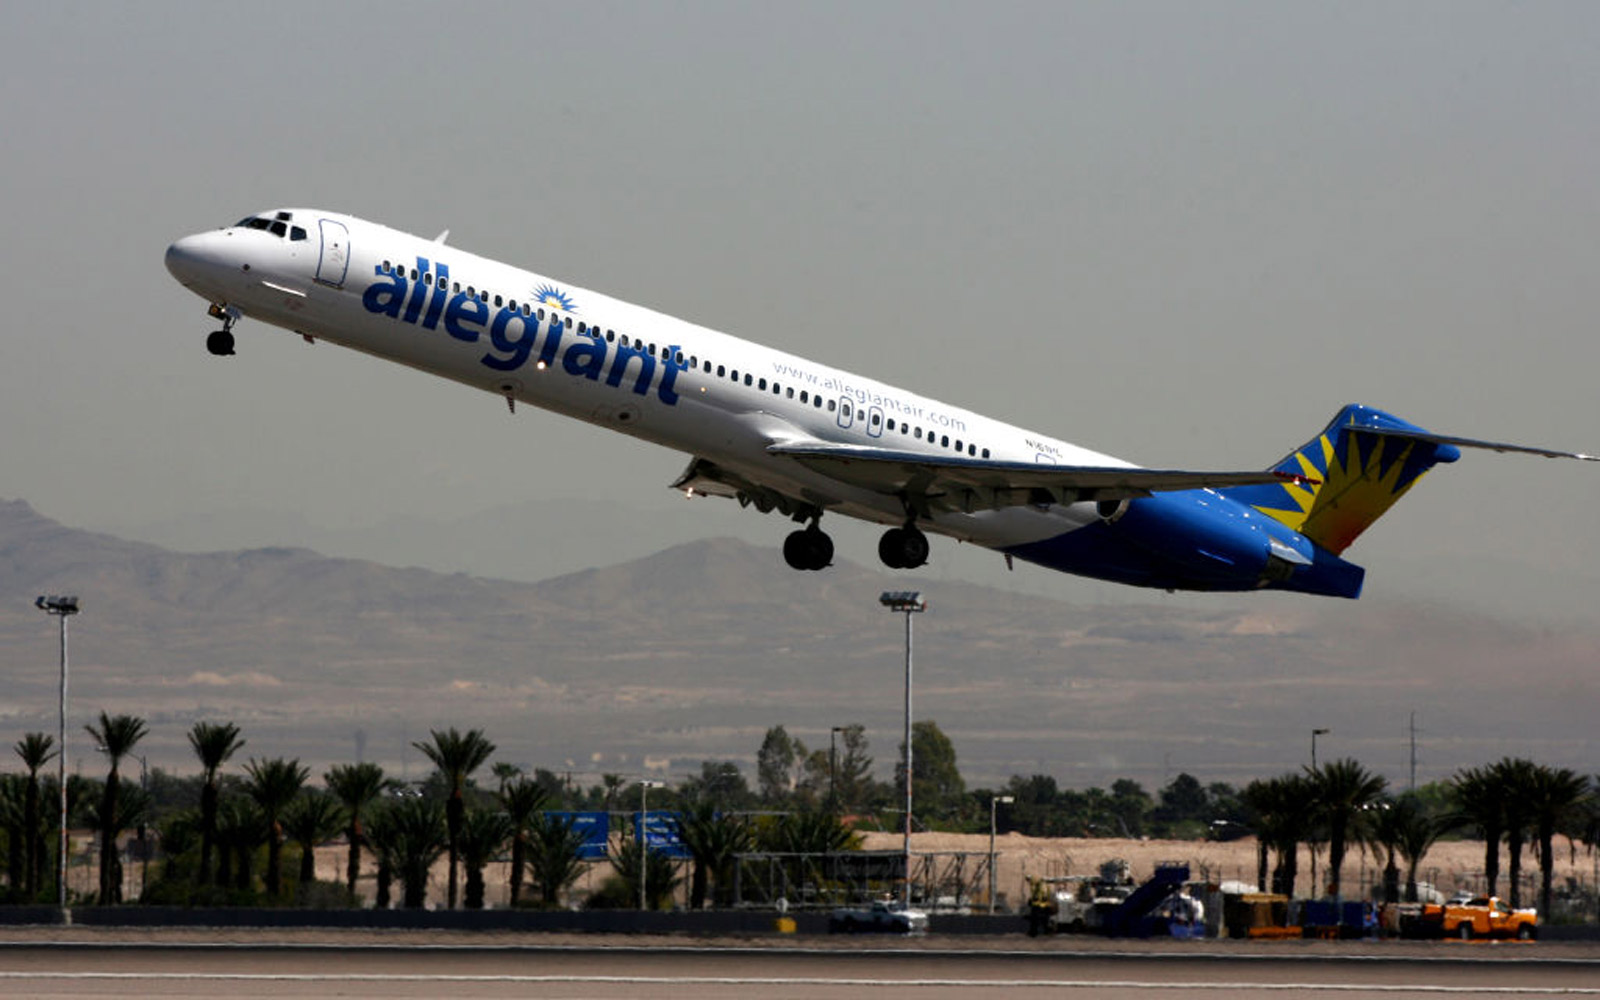 Las Vegas-based Allegiant Air Is Offering Free Flights for Families of Mass Shooting Victims